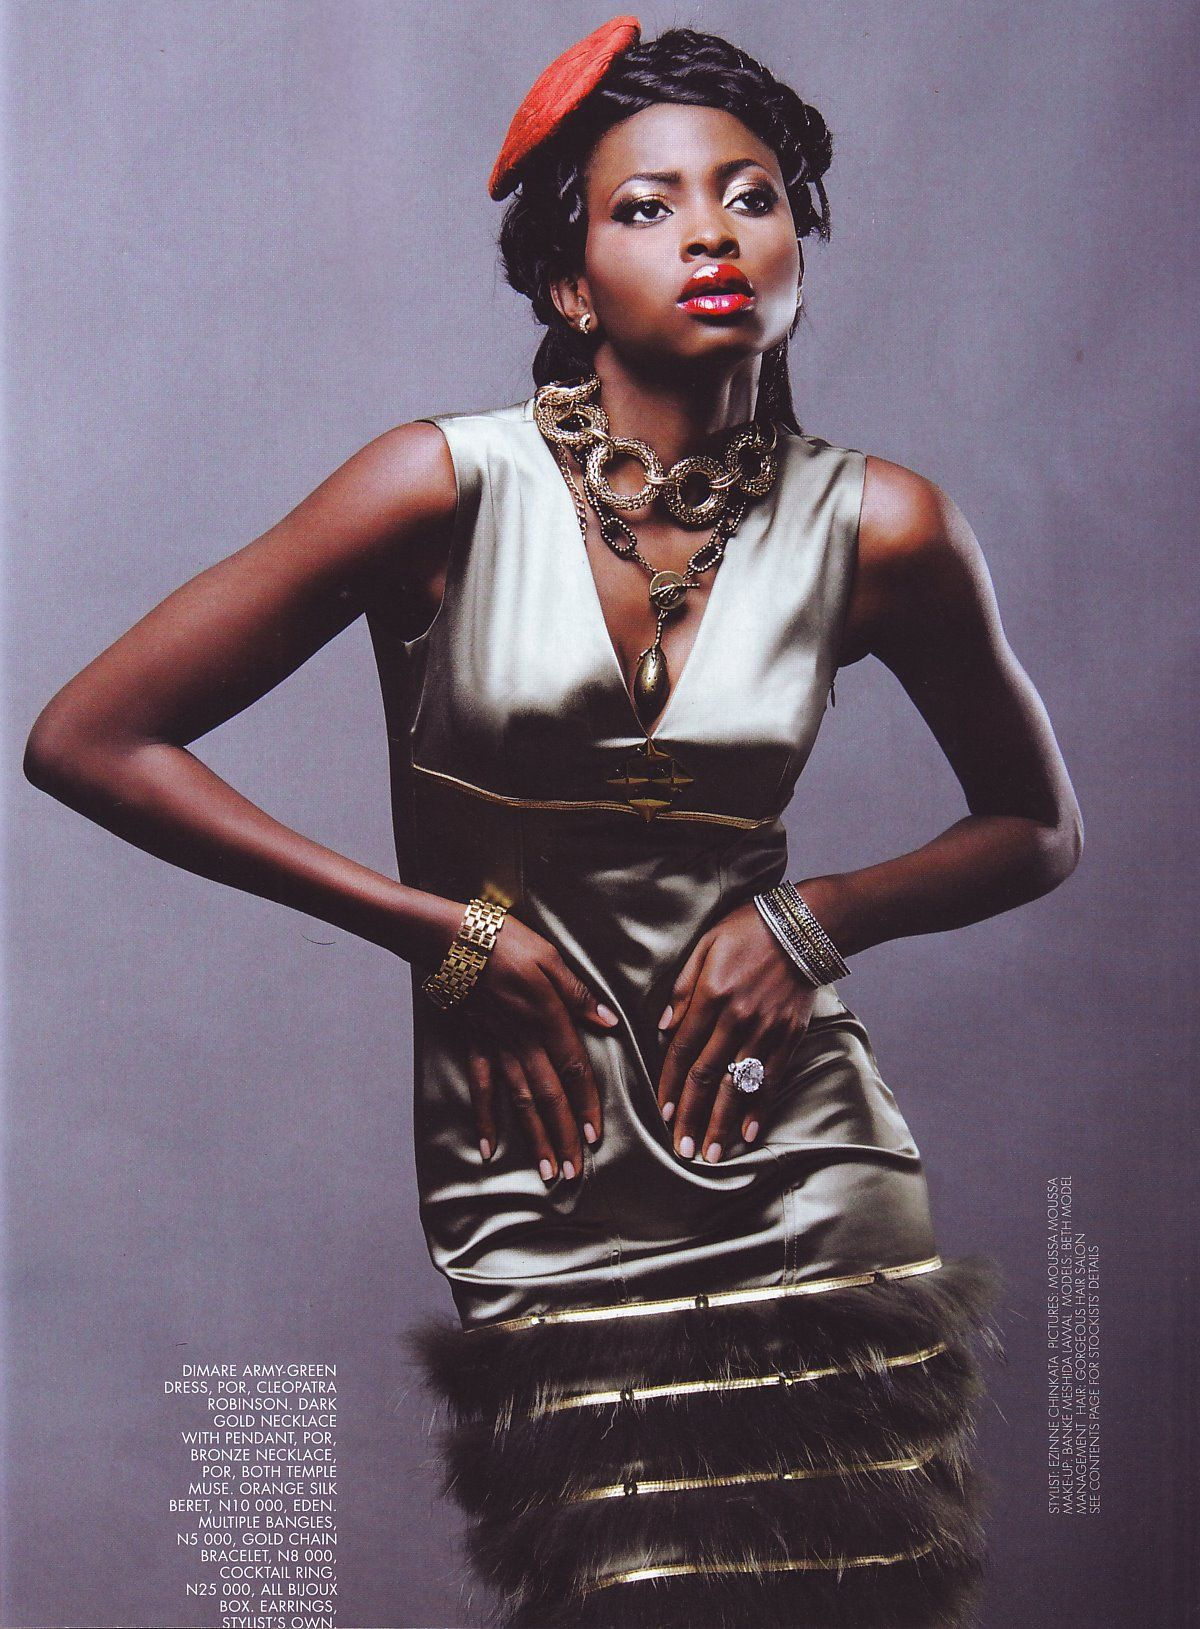 Tear sheet from True Love West Africa Mag.